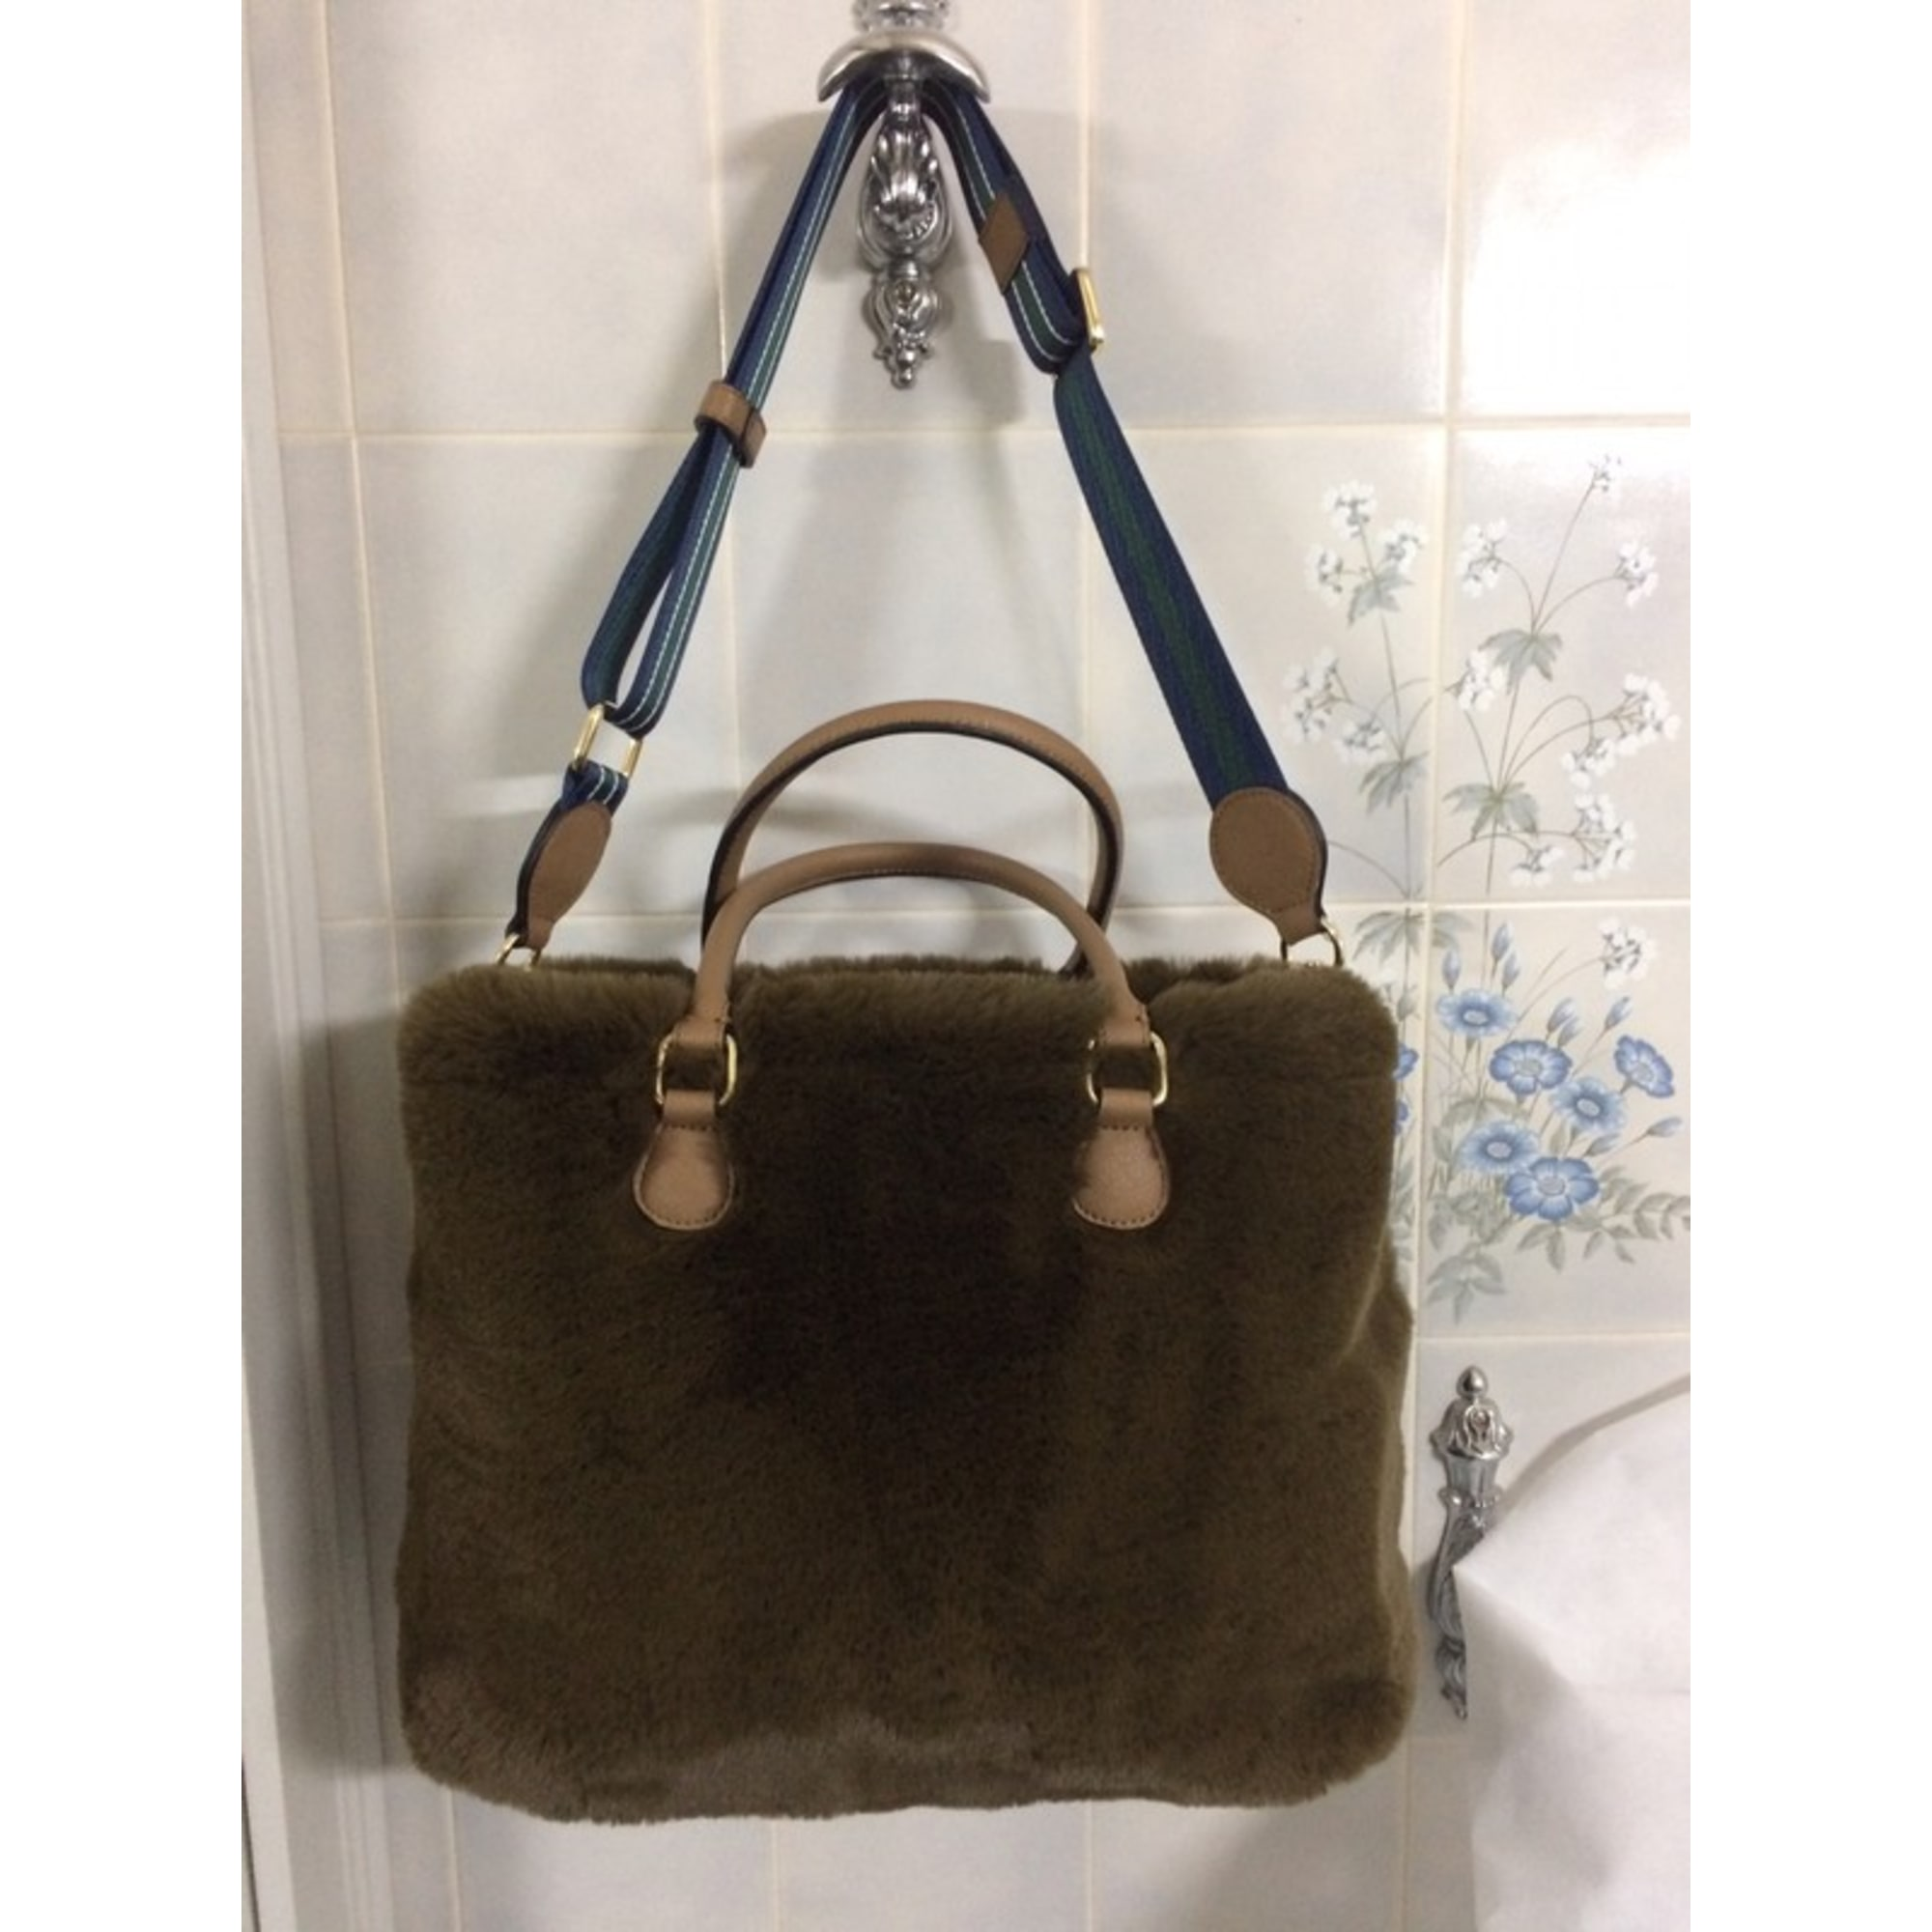 Sac à main en cuir ESSENTIEL ANTWERP polyester marron